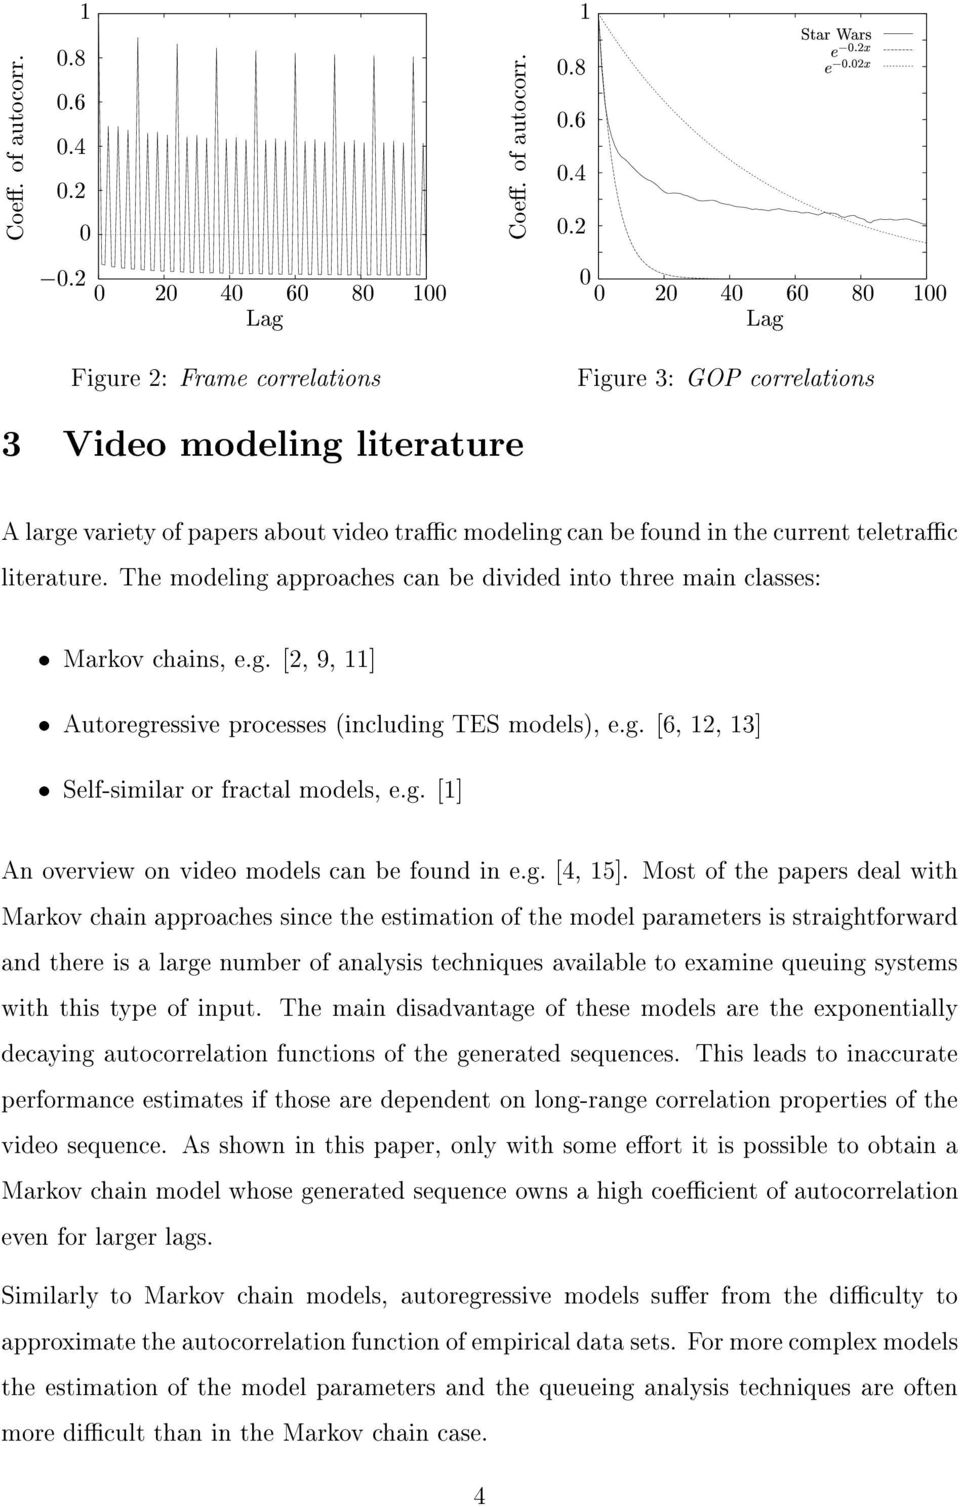 large variety of papers about video trac modeling can be found in the current teletrac literature. The modeling approaches can be divided into three main classes: Markov chains, e.g. [2, 9, ] Autoregressive processes (including TES models), e.